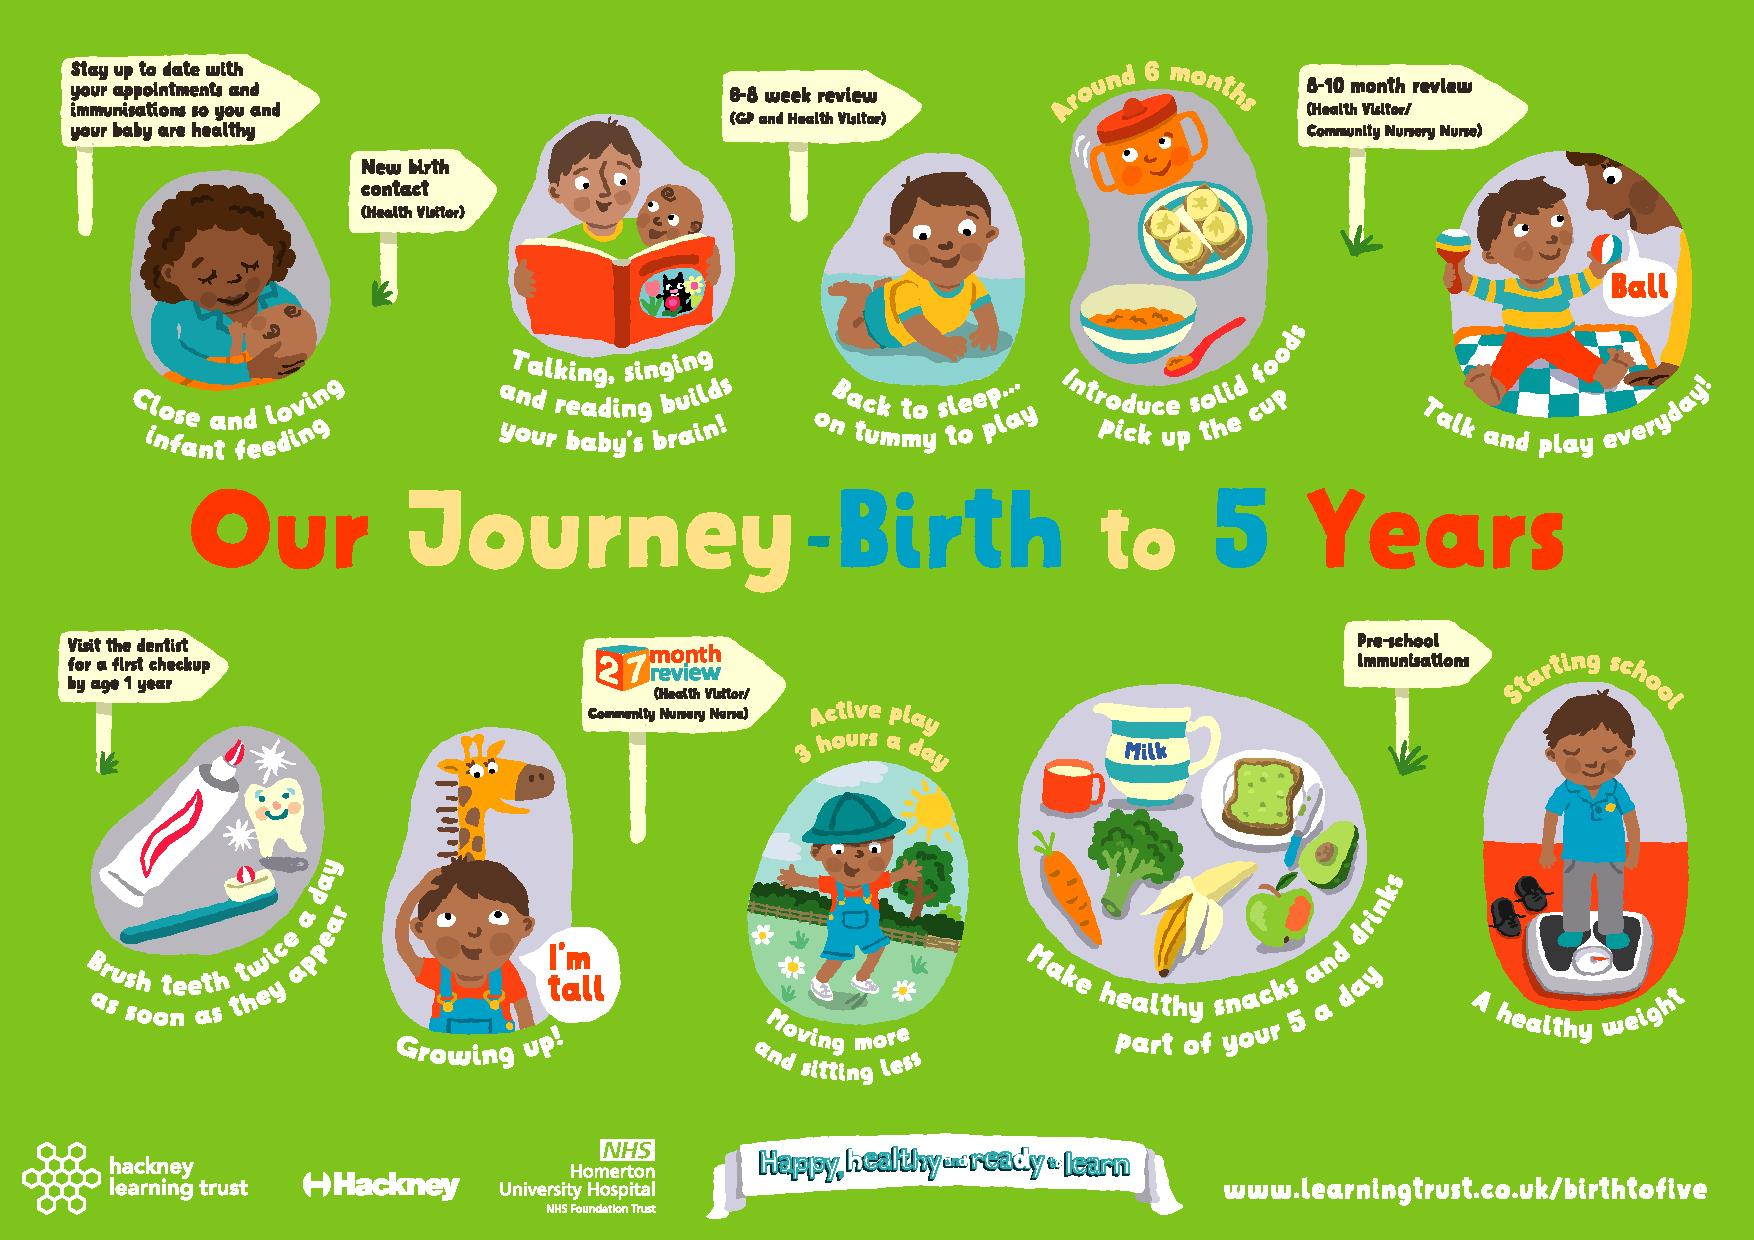 Our Journey - Birth to 5 Years